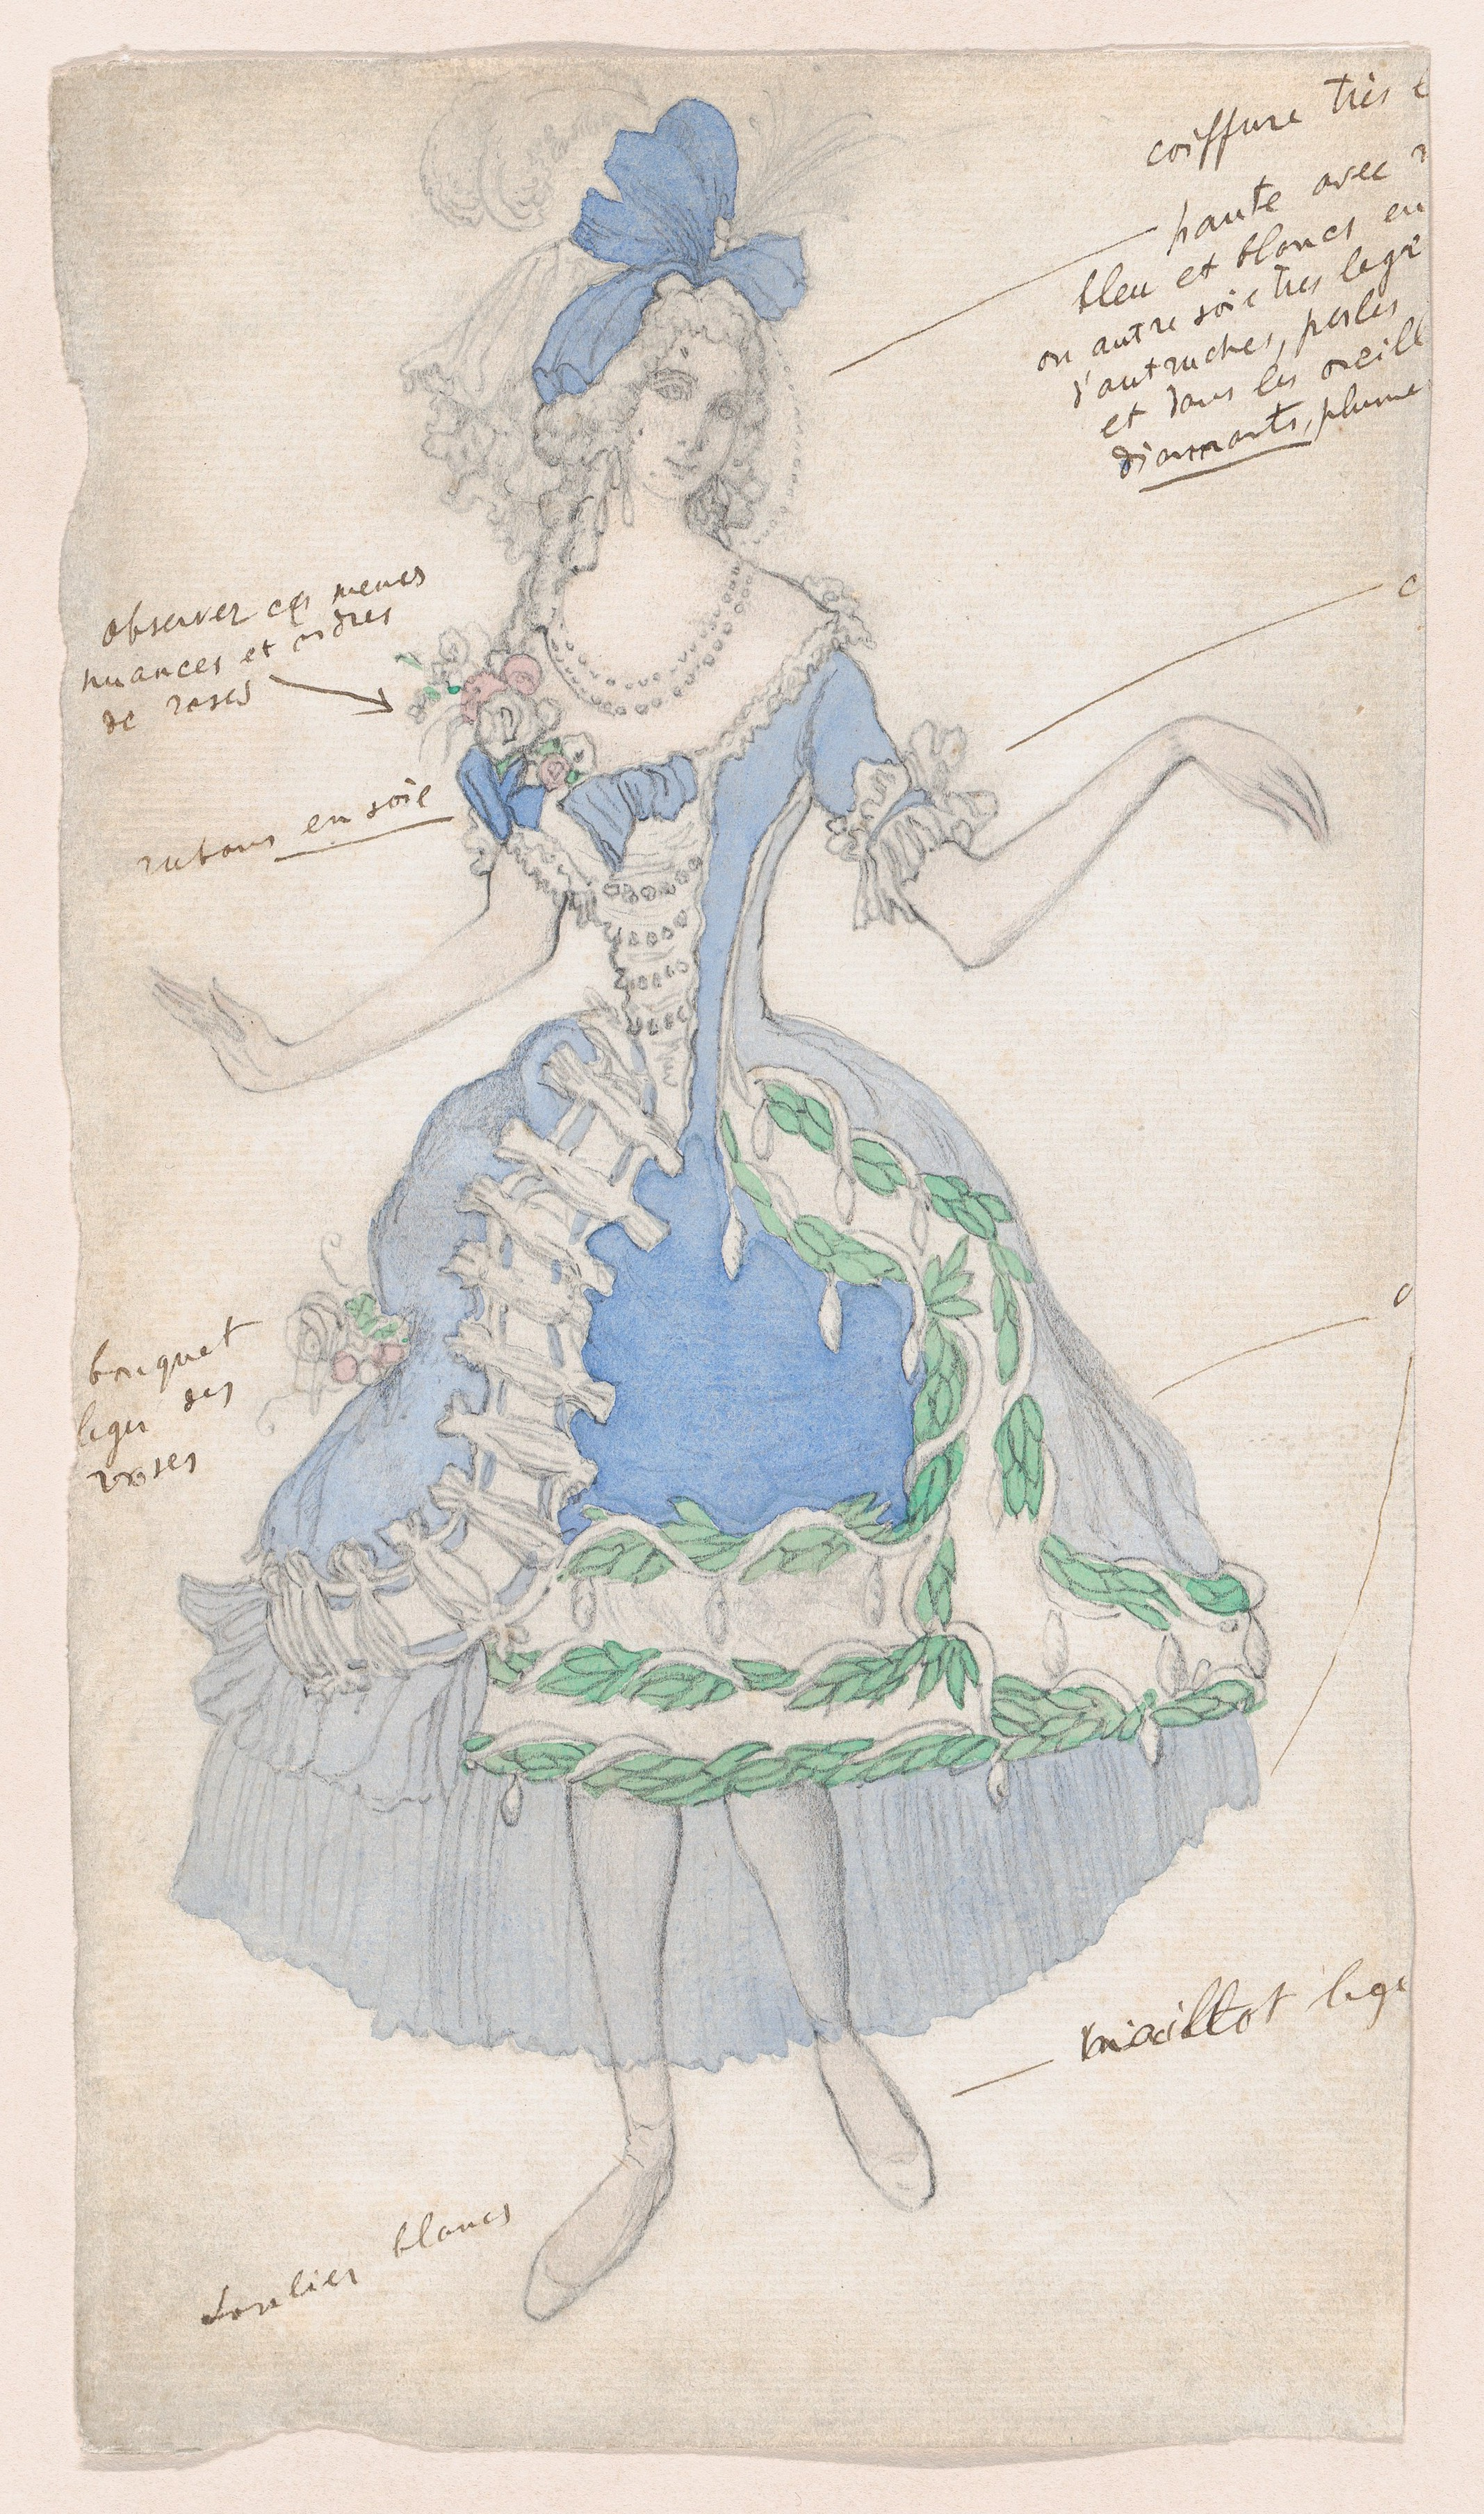 File Costume Design For A Female Courtier Likely For The Ballet La Belle Au Bois Dormant Sleeping Beauty Premiered At The Alhambra Theatre In London 1921 Met Dp859238 Jpg Wikimedia Commons